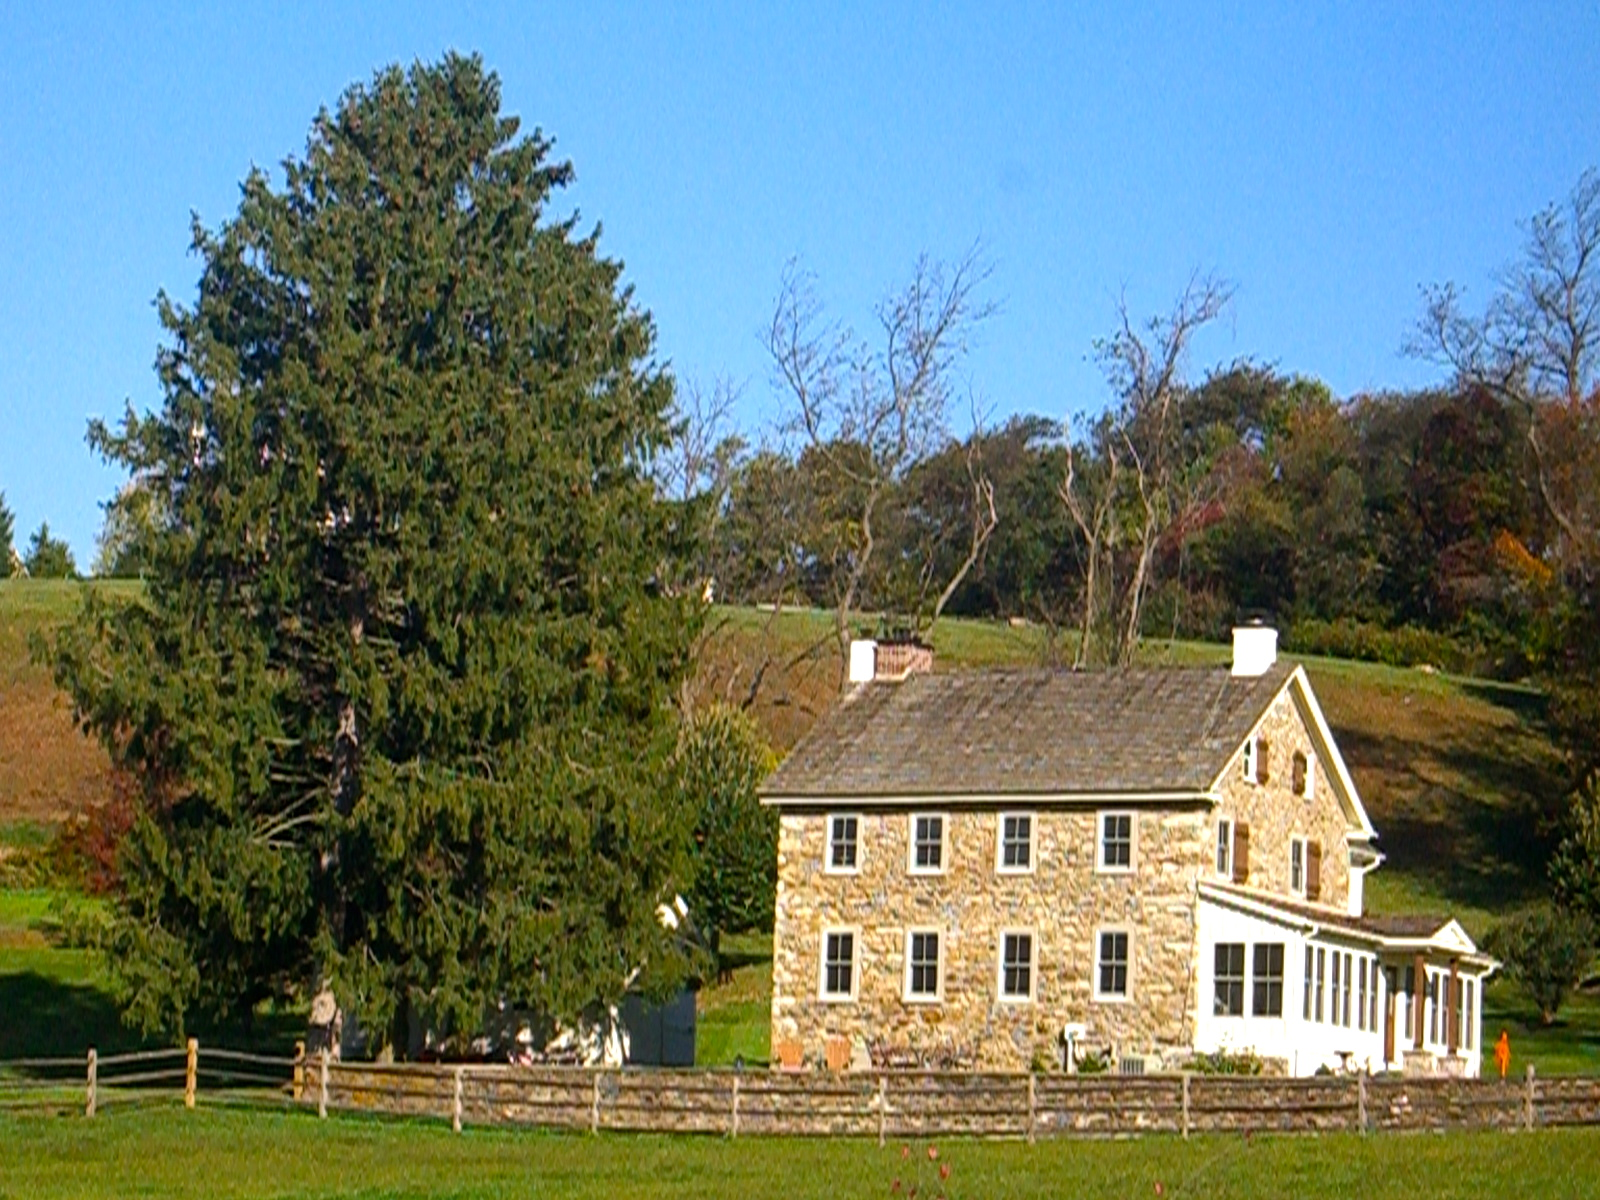 The Farm House